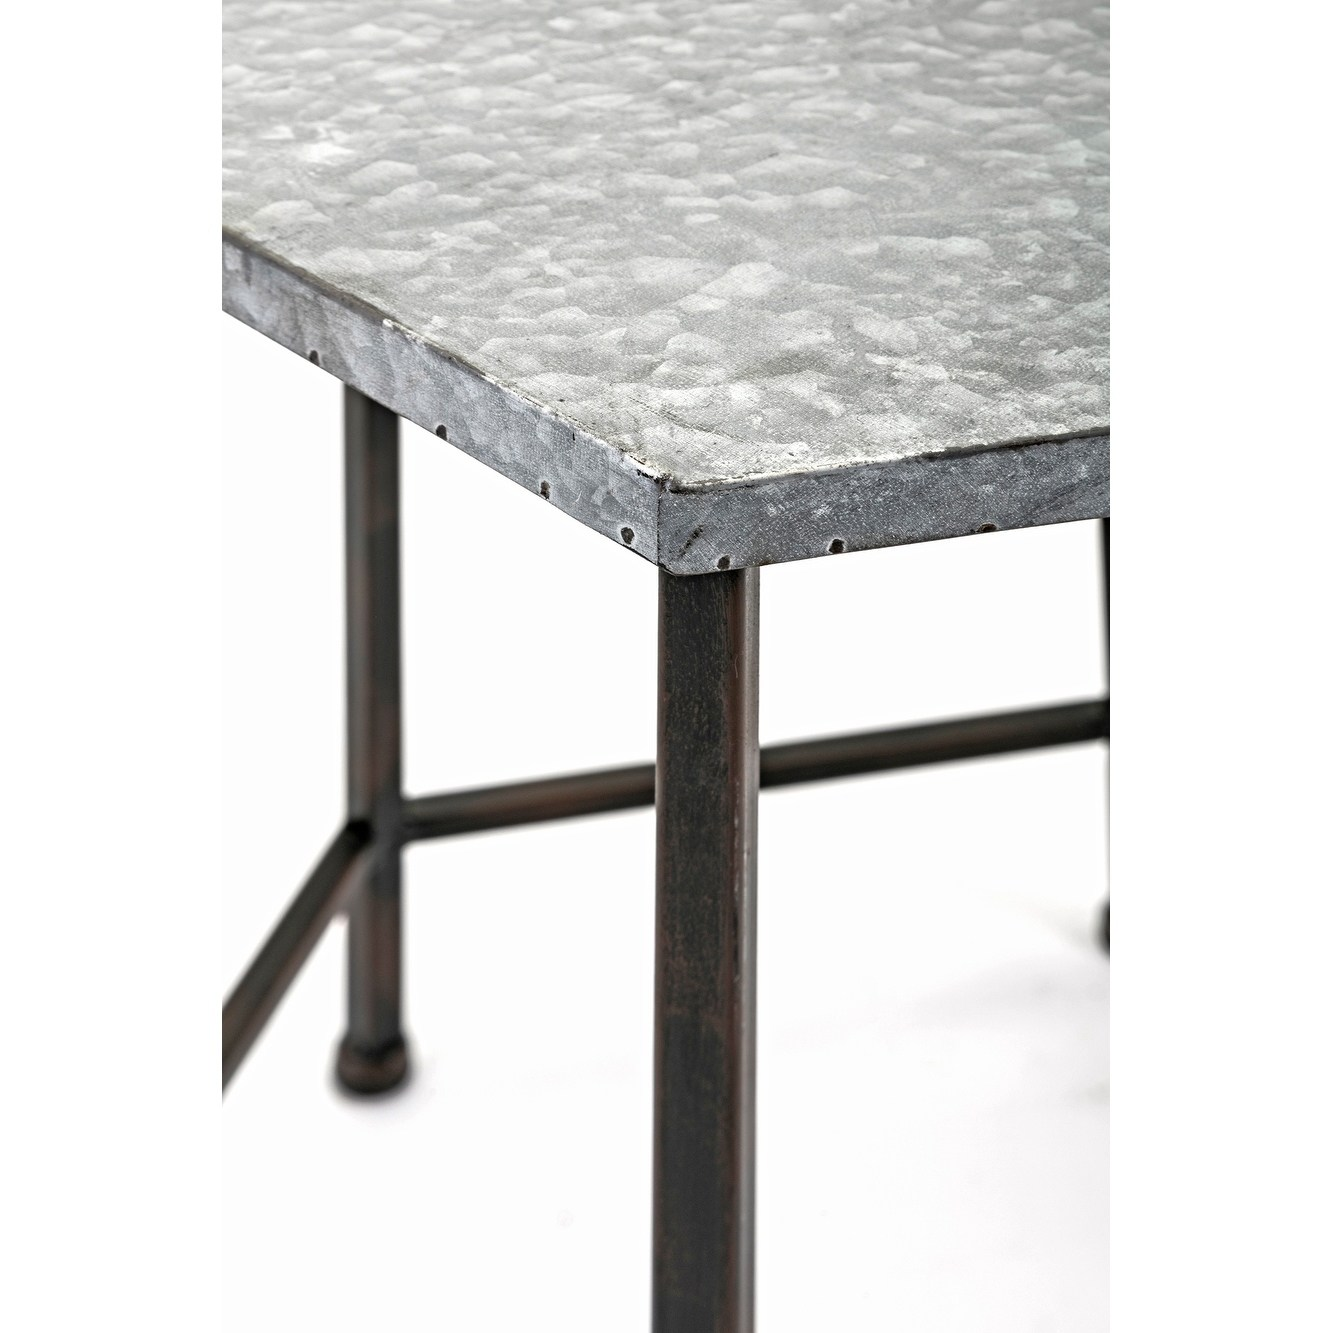 kendan galvanized black and grey accent tables set metal table free shipping today target dresser drawers antique pedestal side modern legs corner nightstand tablecloth couch